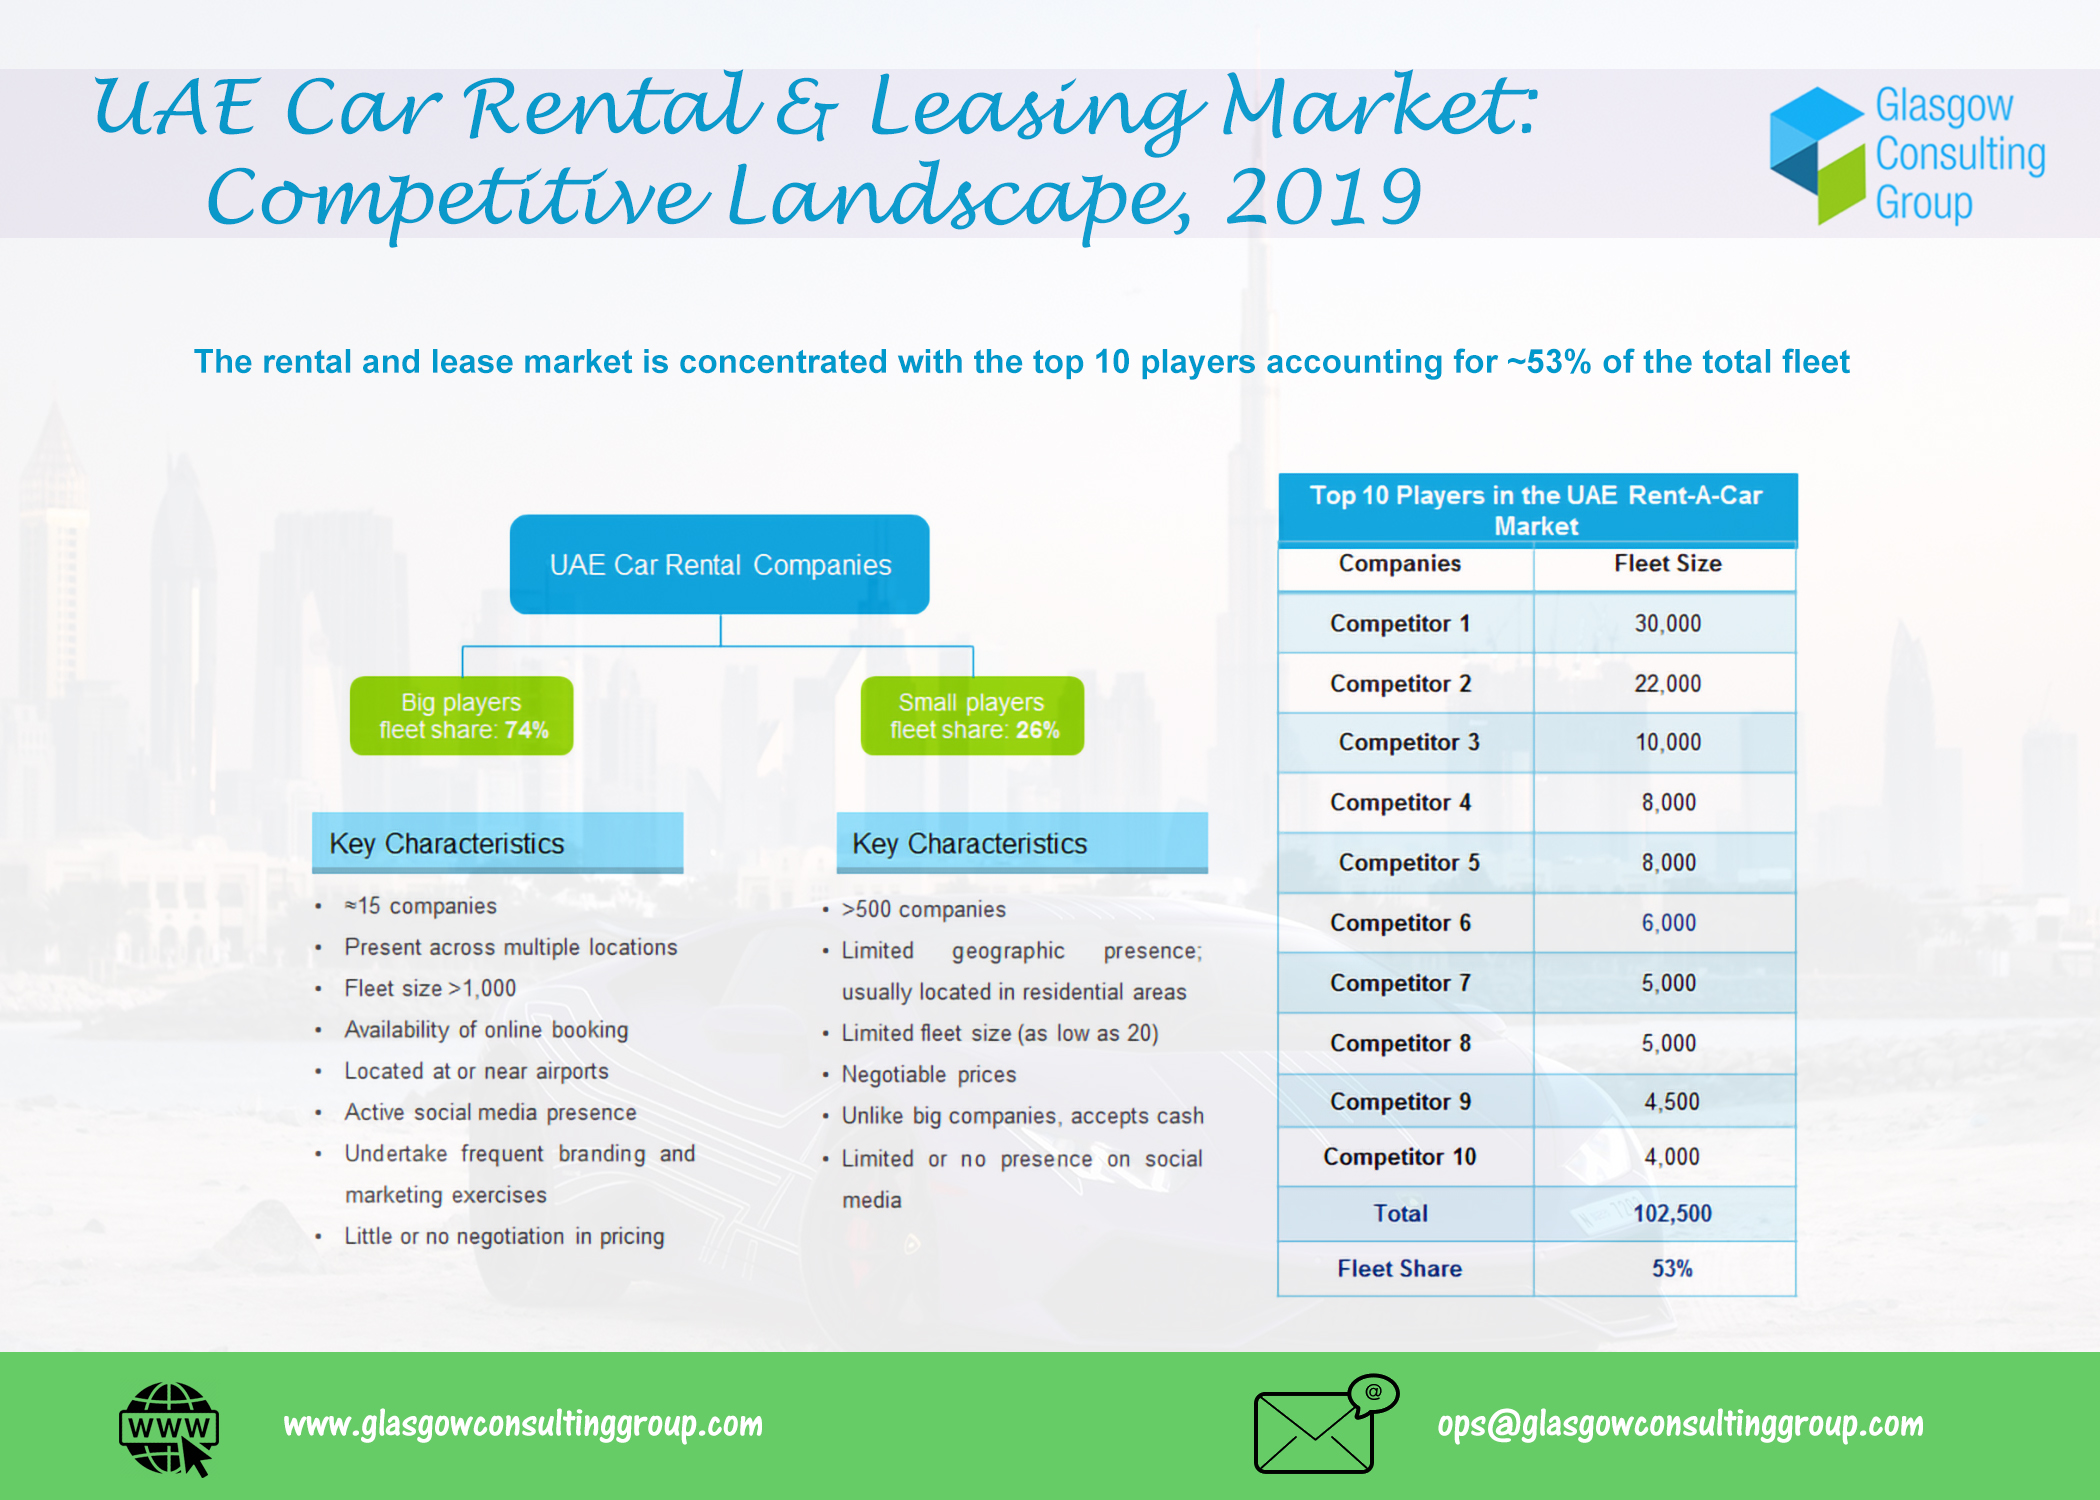 UAE Car Rental and Leasing Market Competitive Landscape 2019